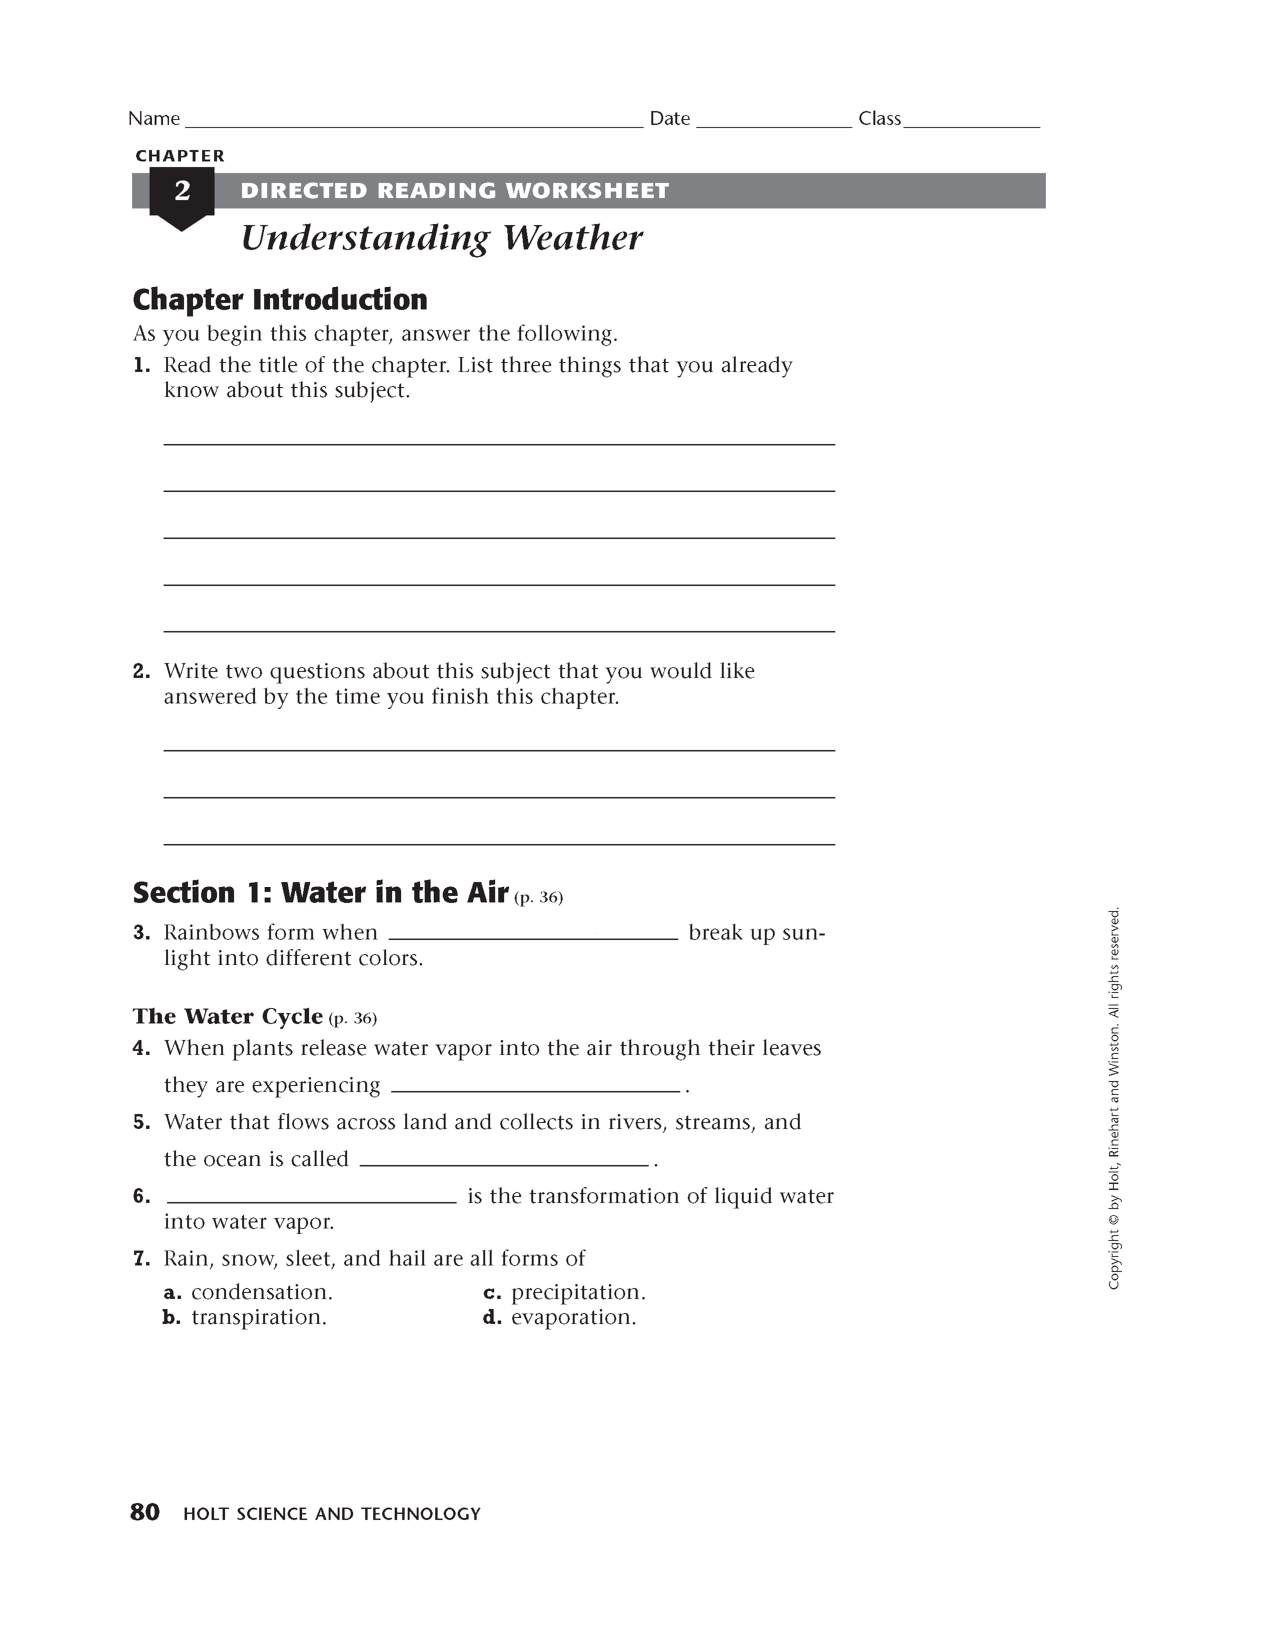 small resolution of Holt Science and Technology Worksheet Answers   Science worksheets